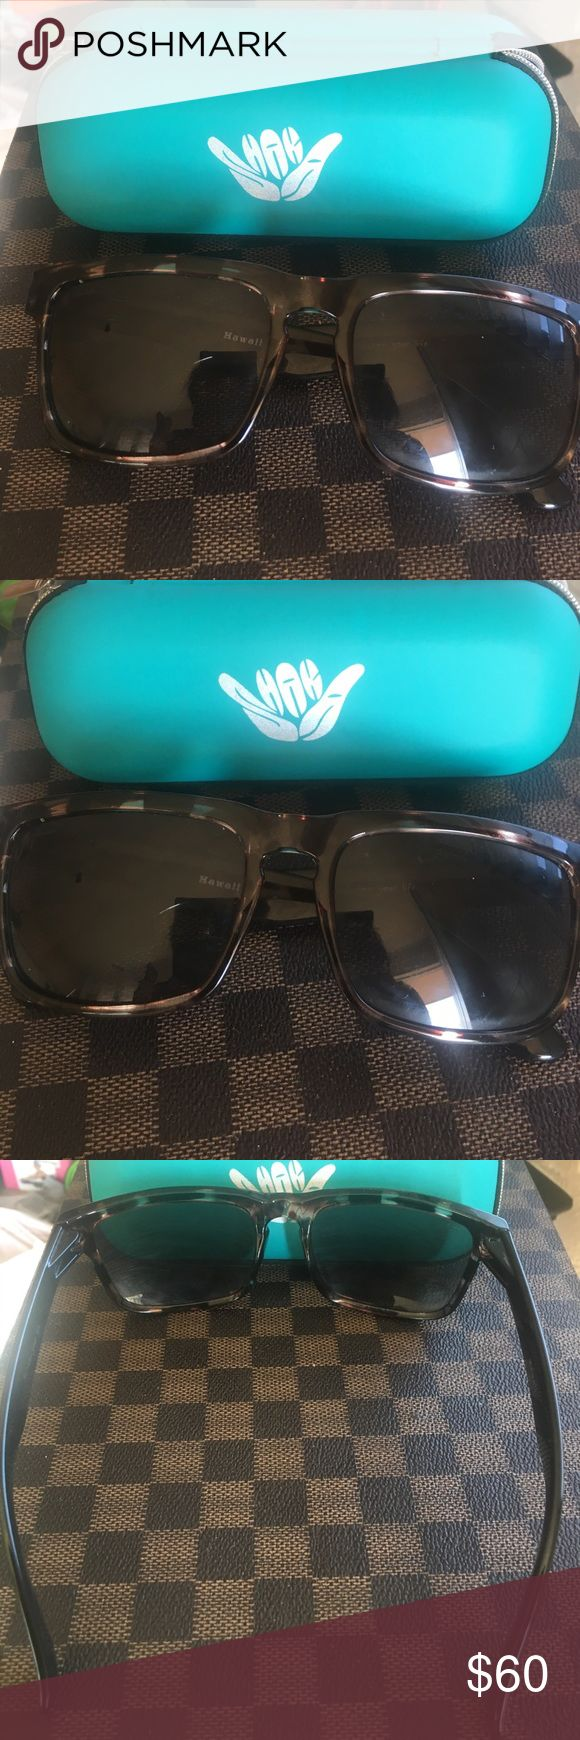 Shaka׳s Hawaii popular sunglasses 🕶 Hawaii Popular sunglasses 😎.           Shaka׳s  sunglasses are Durable and flexible- Made from a military grade plastic called TR90 Which makes it the strongest sunglasses in the world. Accessories Sunglasses